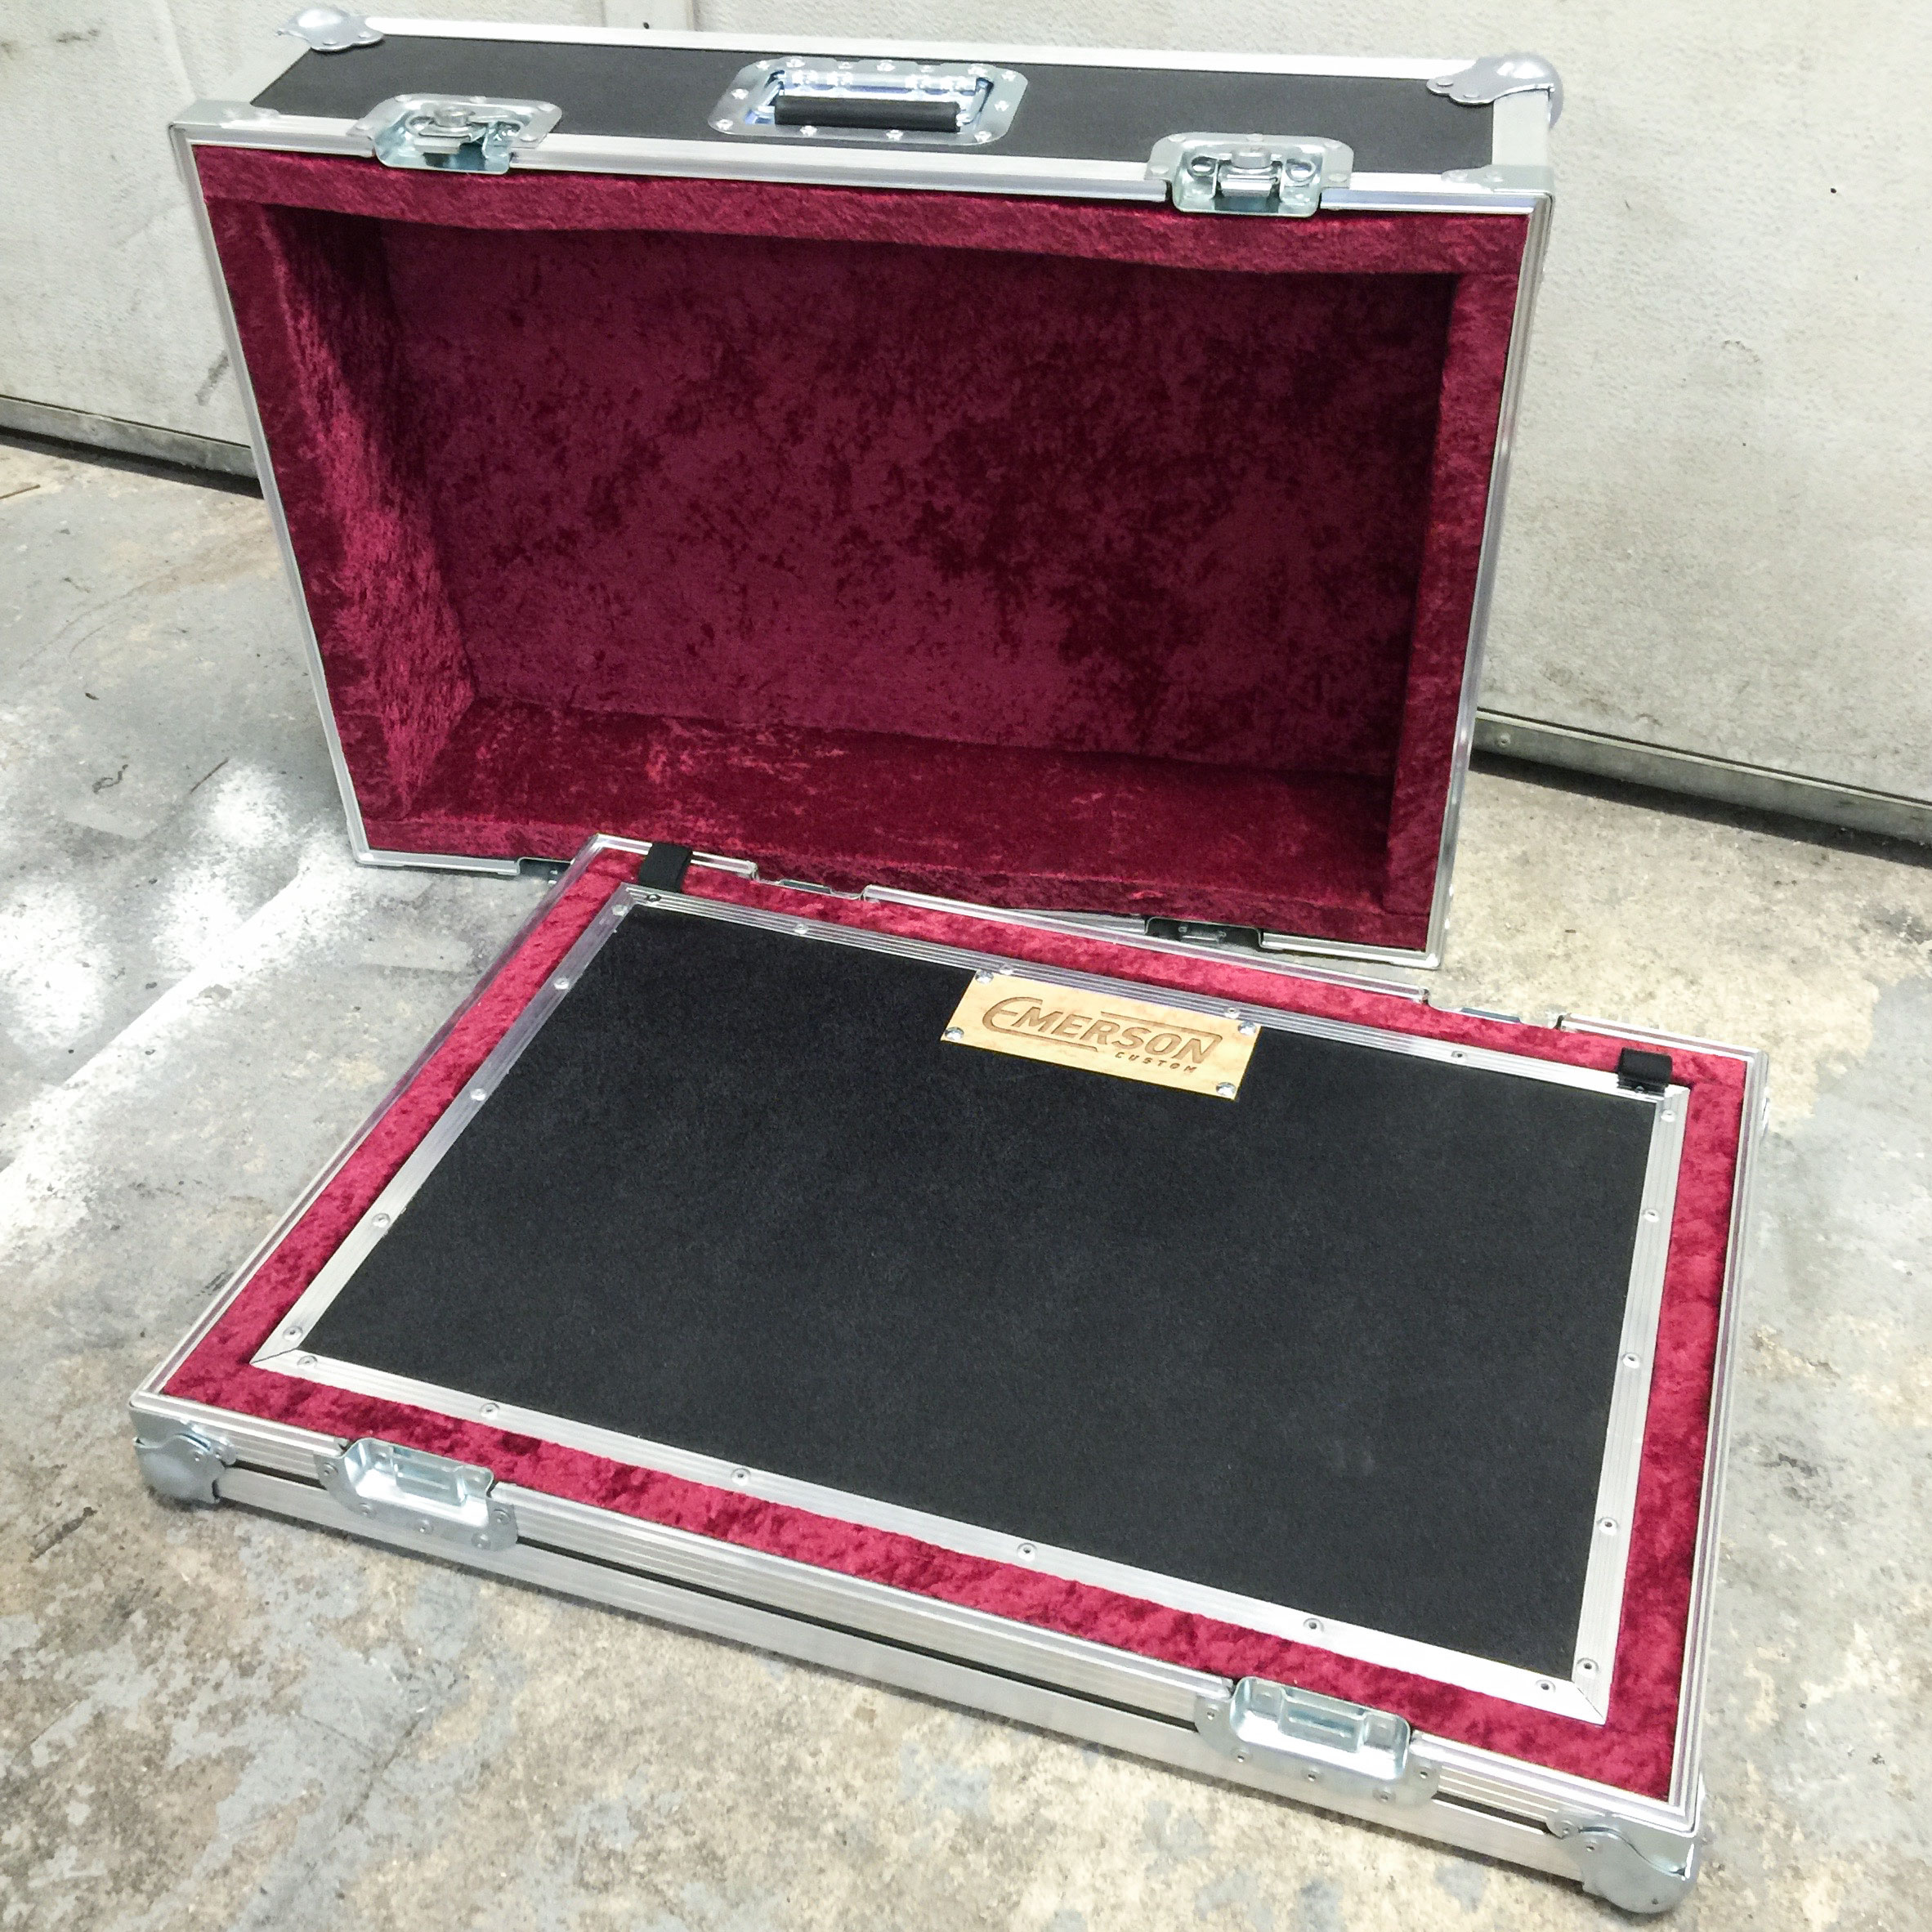 Pedal-Board-Emerson-Road-Case.jpg